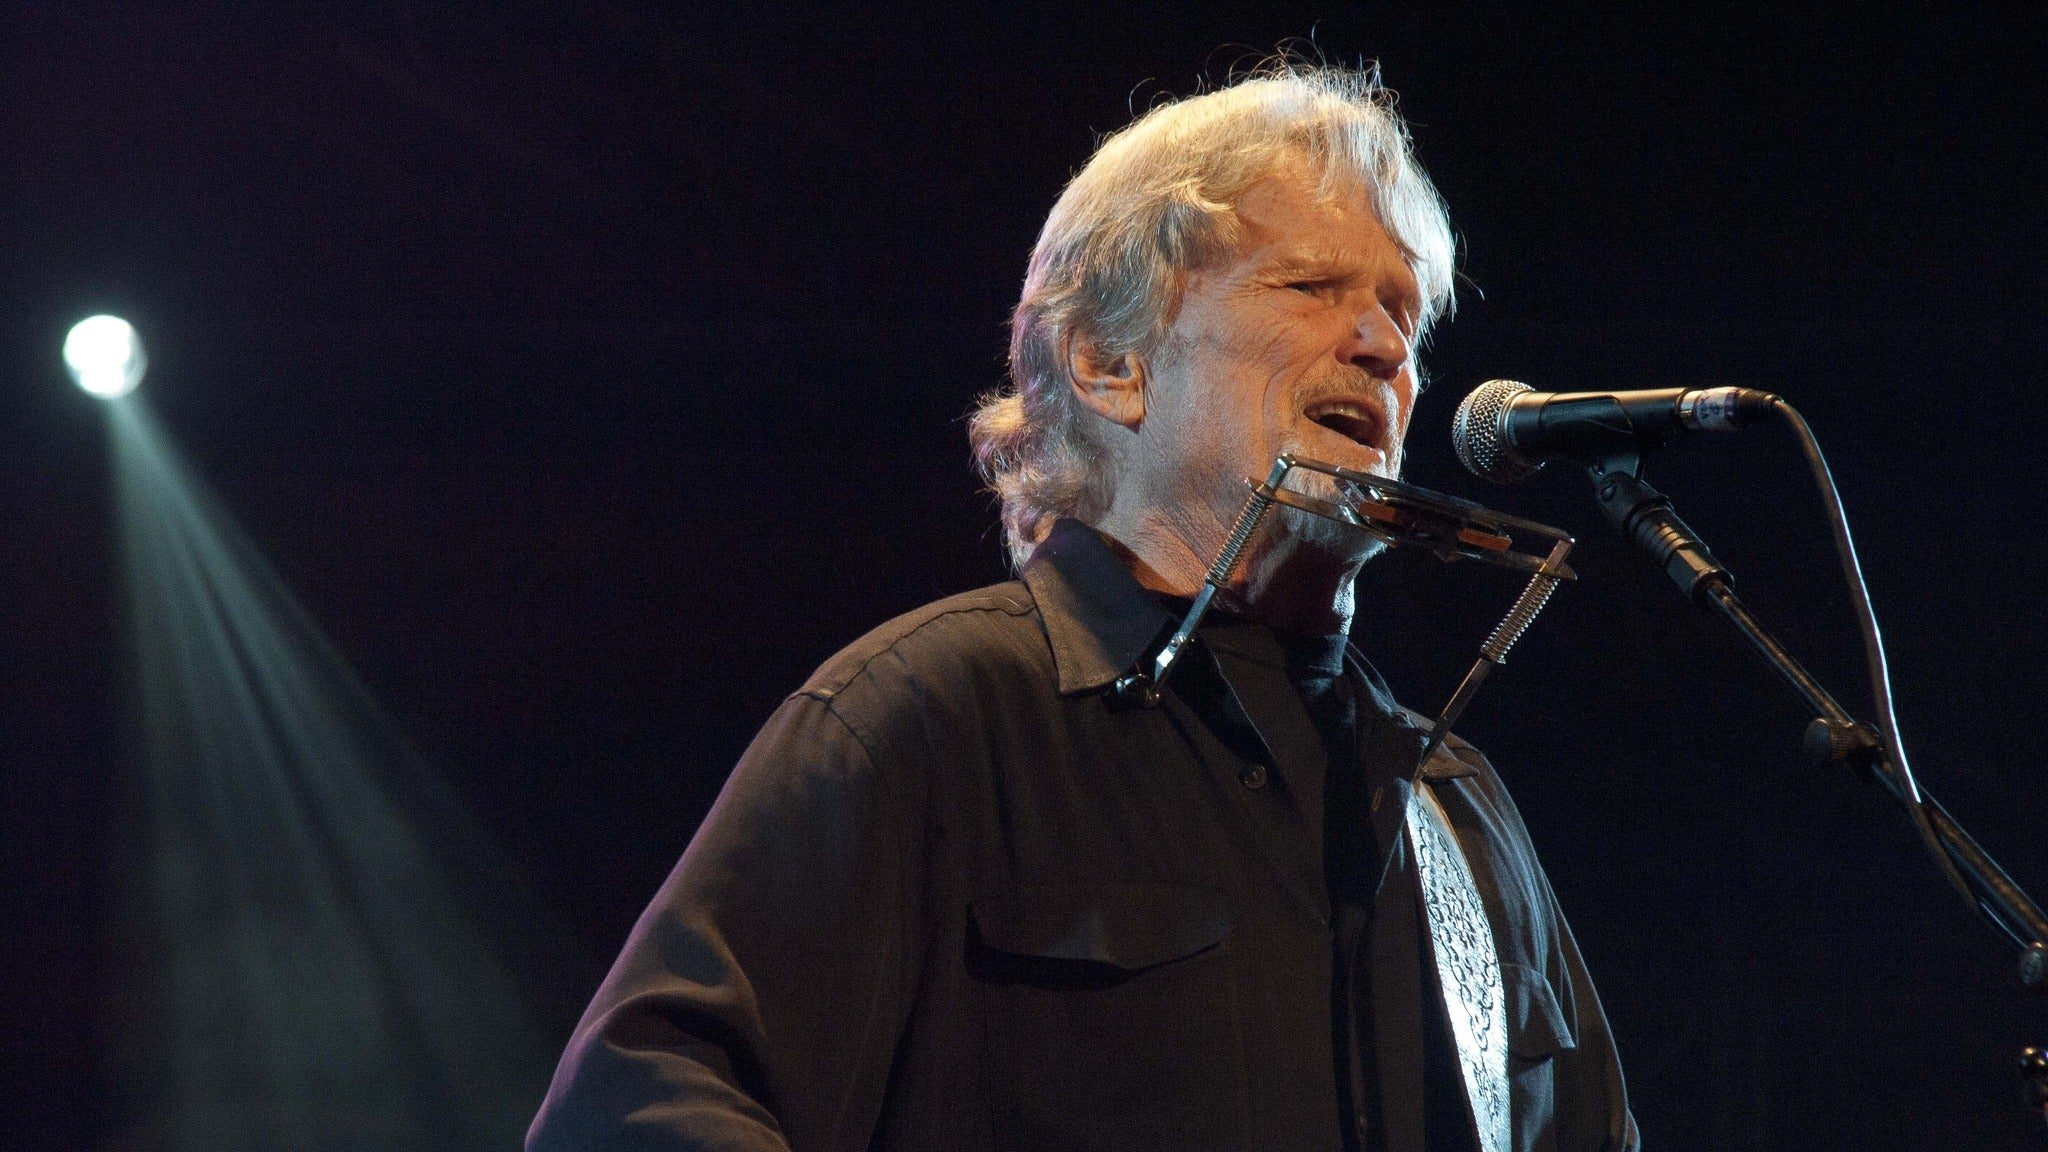 Kris Kristofferson at Neal S Blaisdell Concert Hall